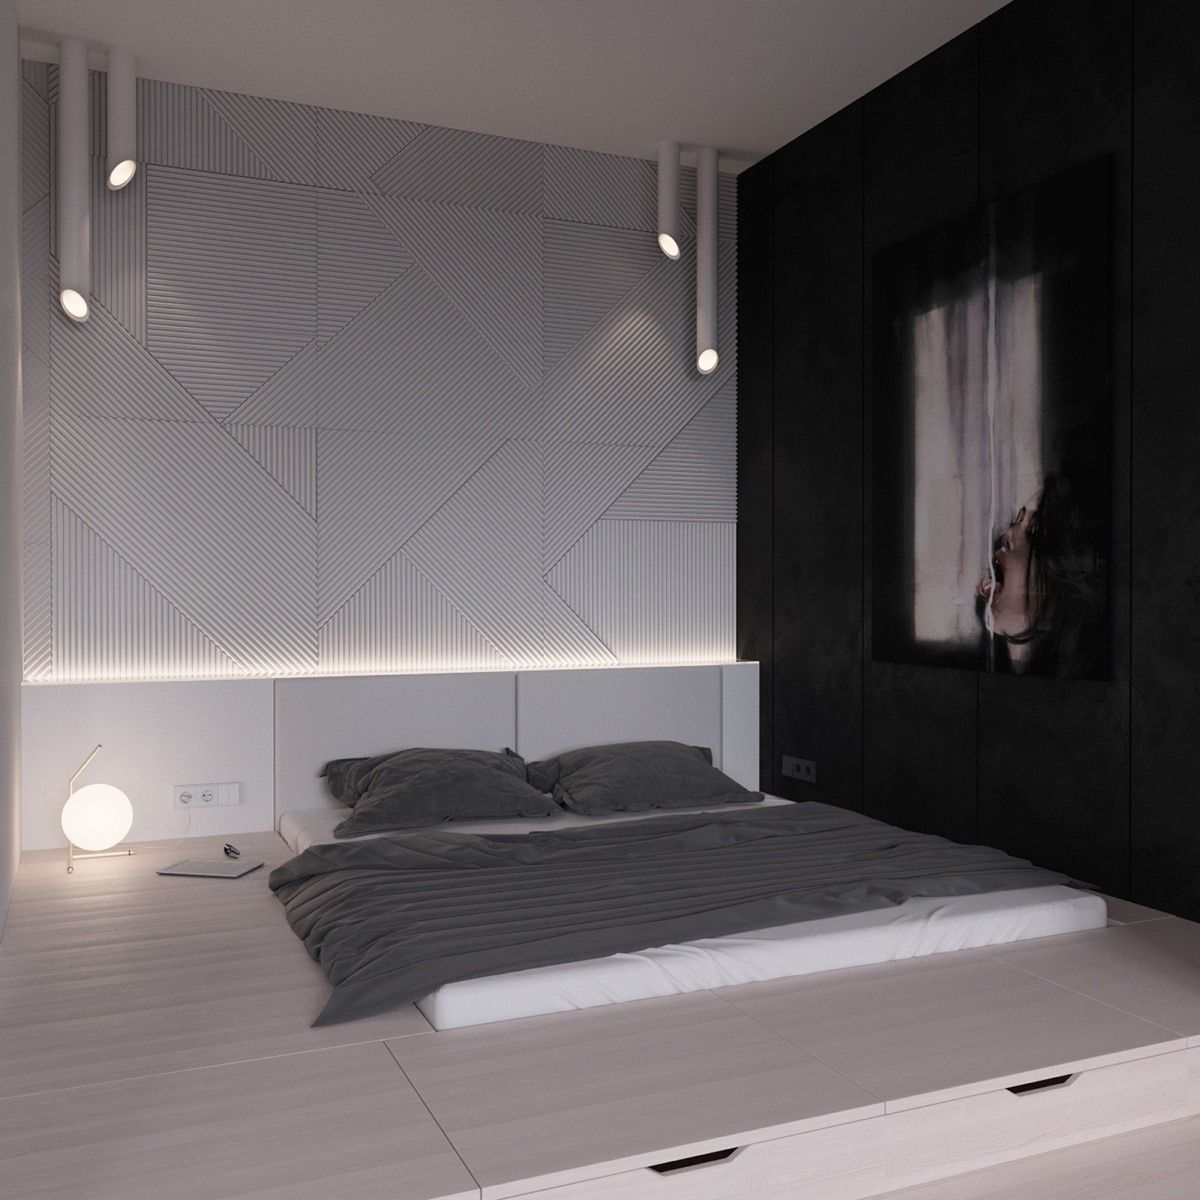 Minimalist Bedroom White Bedroom Walls Pin by